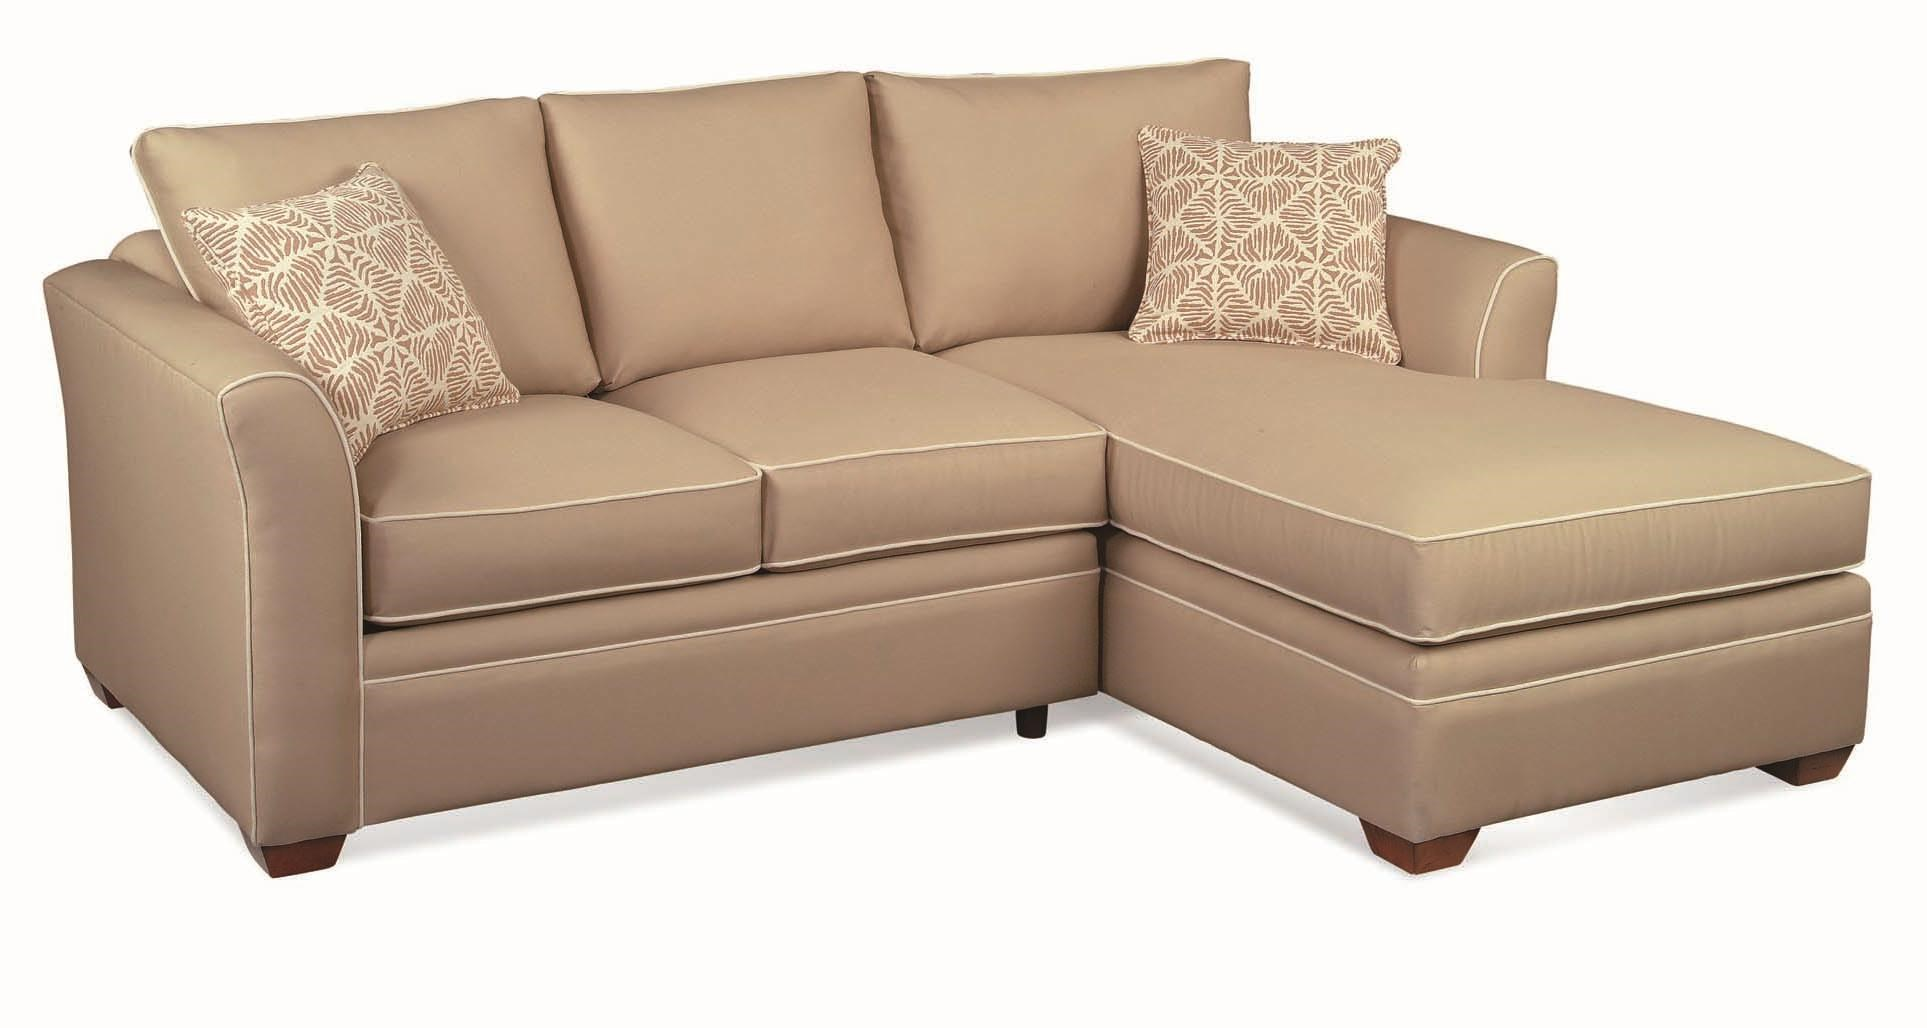 Braxton Culler Bridgeport Casual 2 Piece Sectional Sofa With Chaise